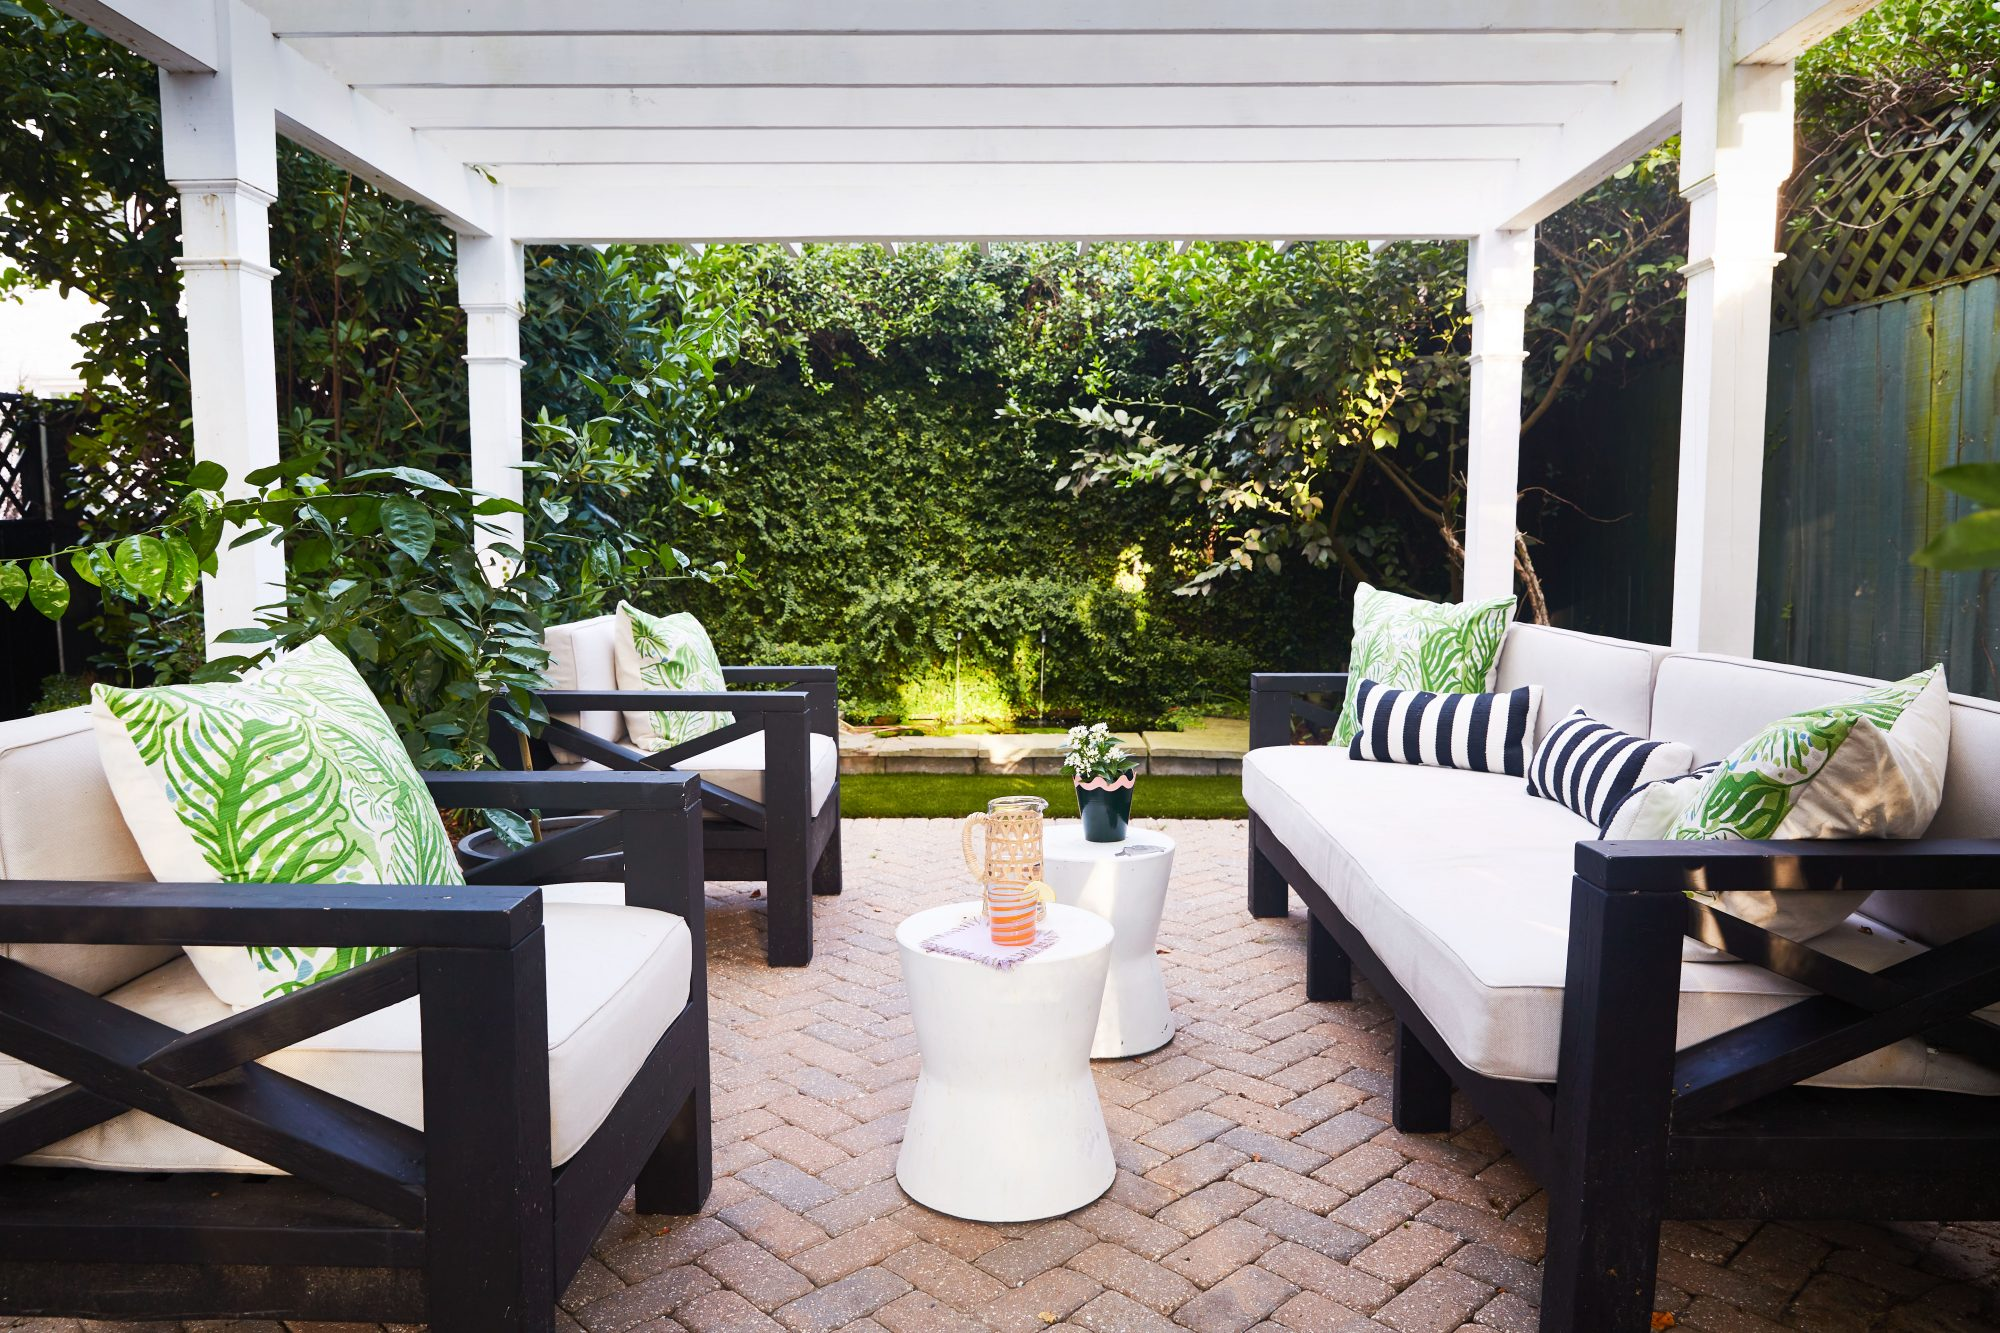 Pergola-covered patio with outdoor seating and adjacent koi pond